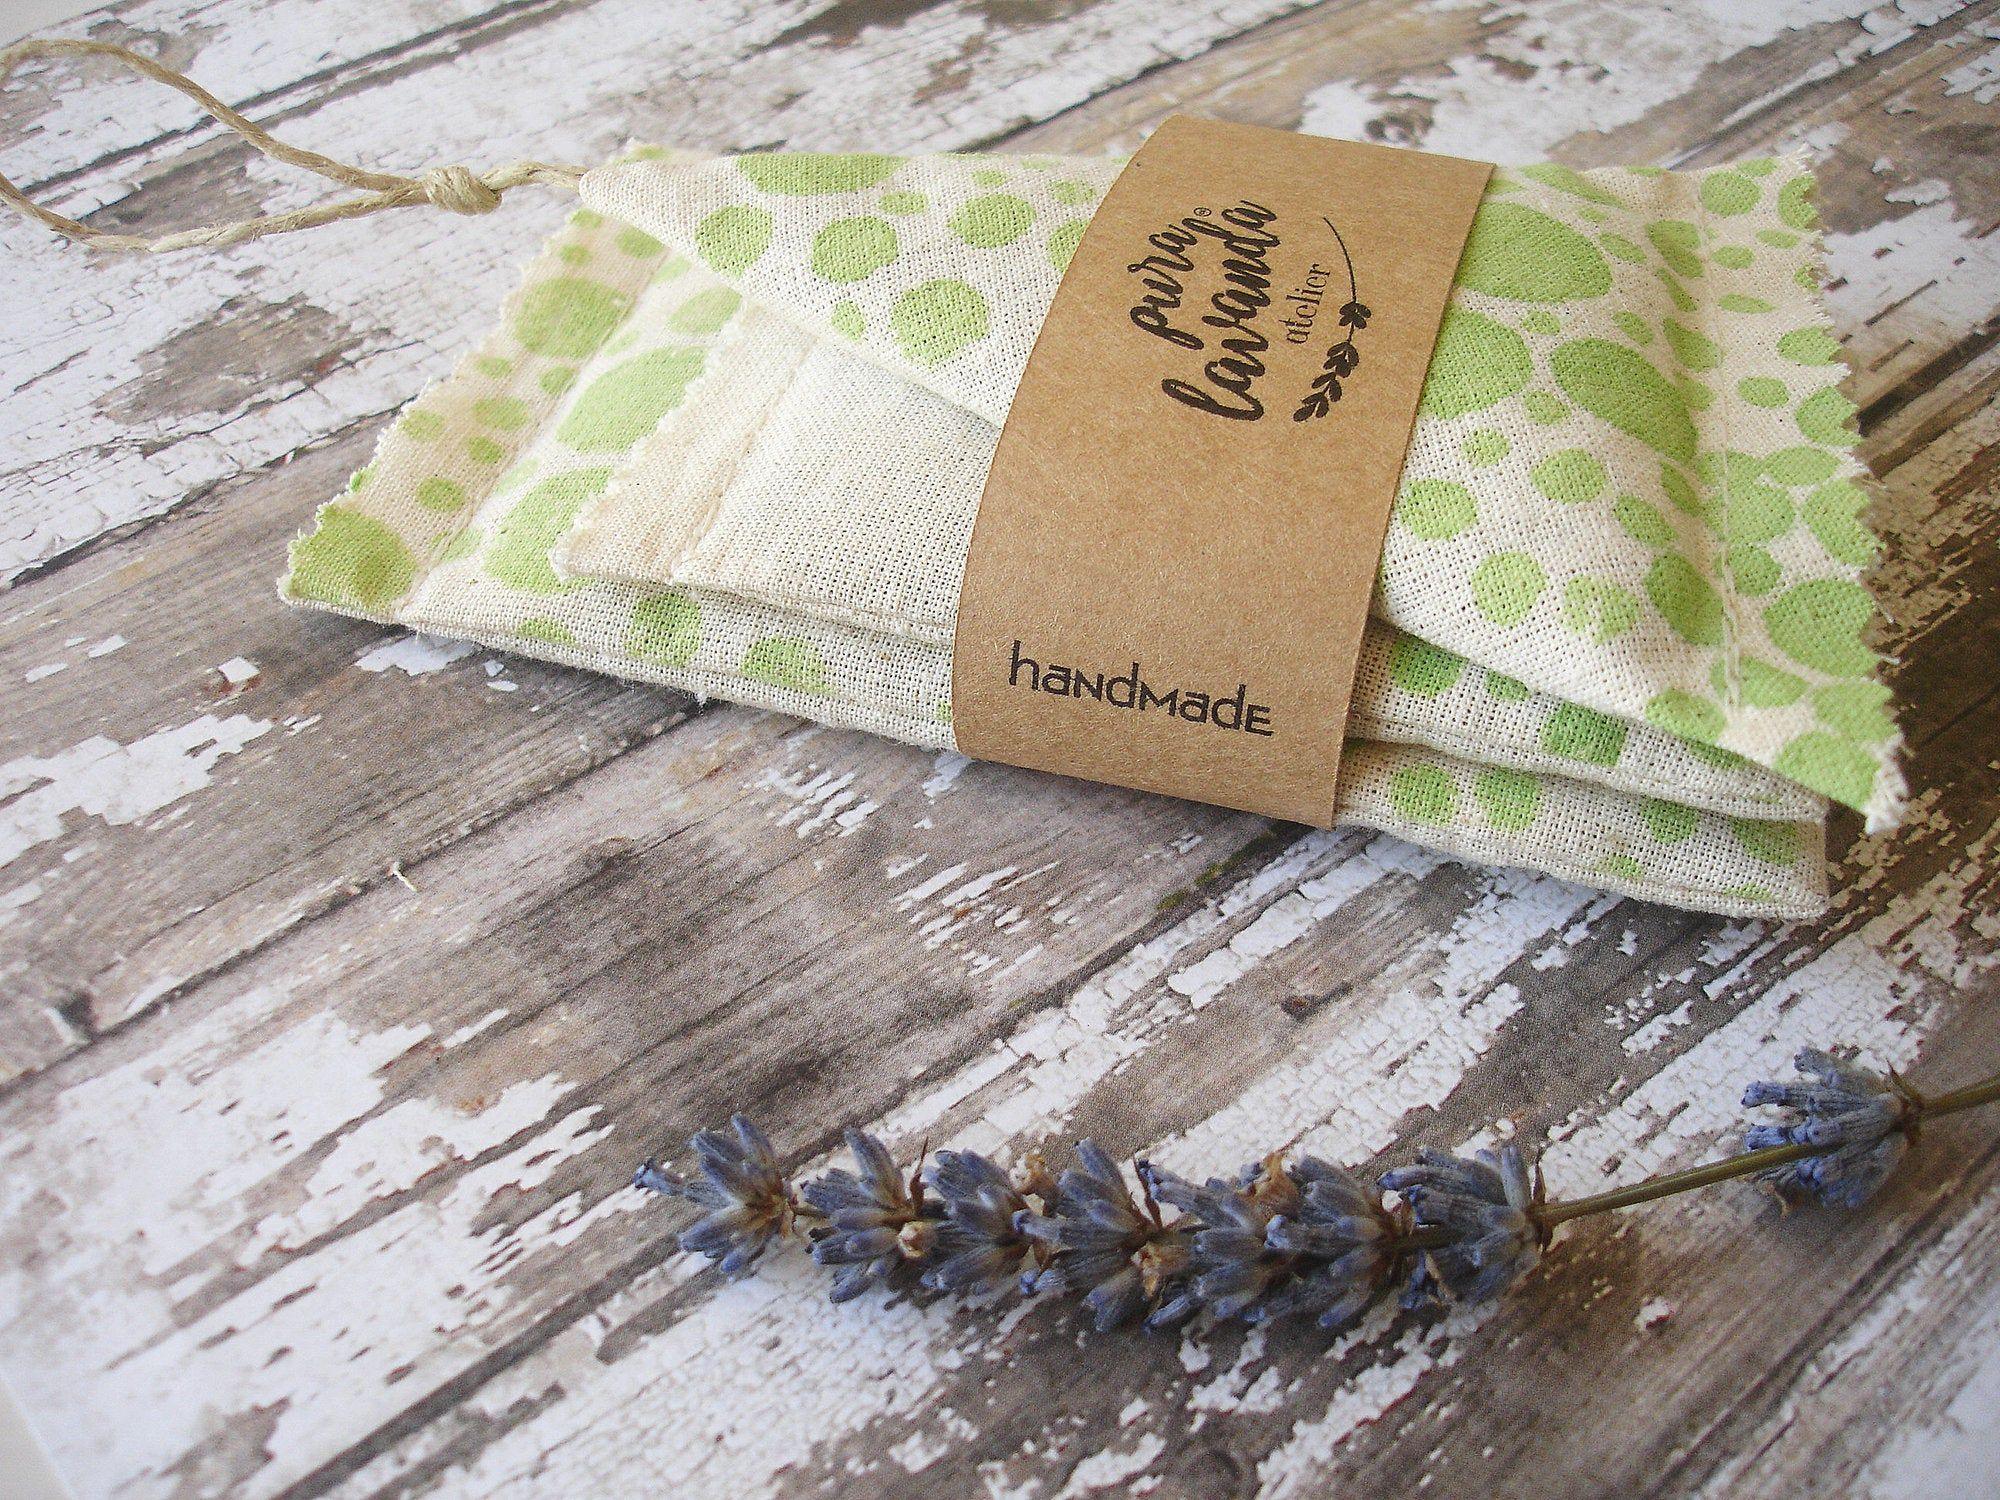 Lavender Sachet Eco Friendly Products Laundry Supplies Etsy In 2020 Lavender Sachets Etsy Etsy Finds